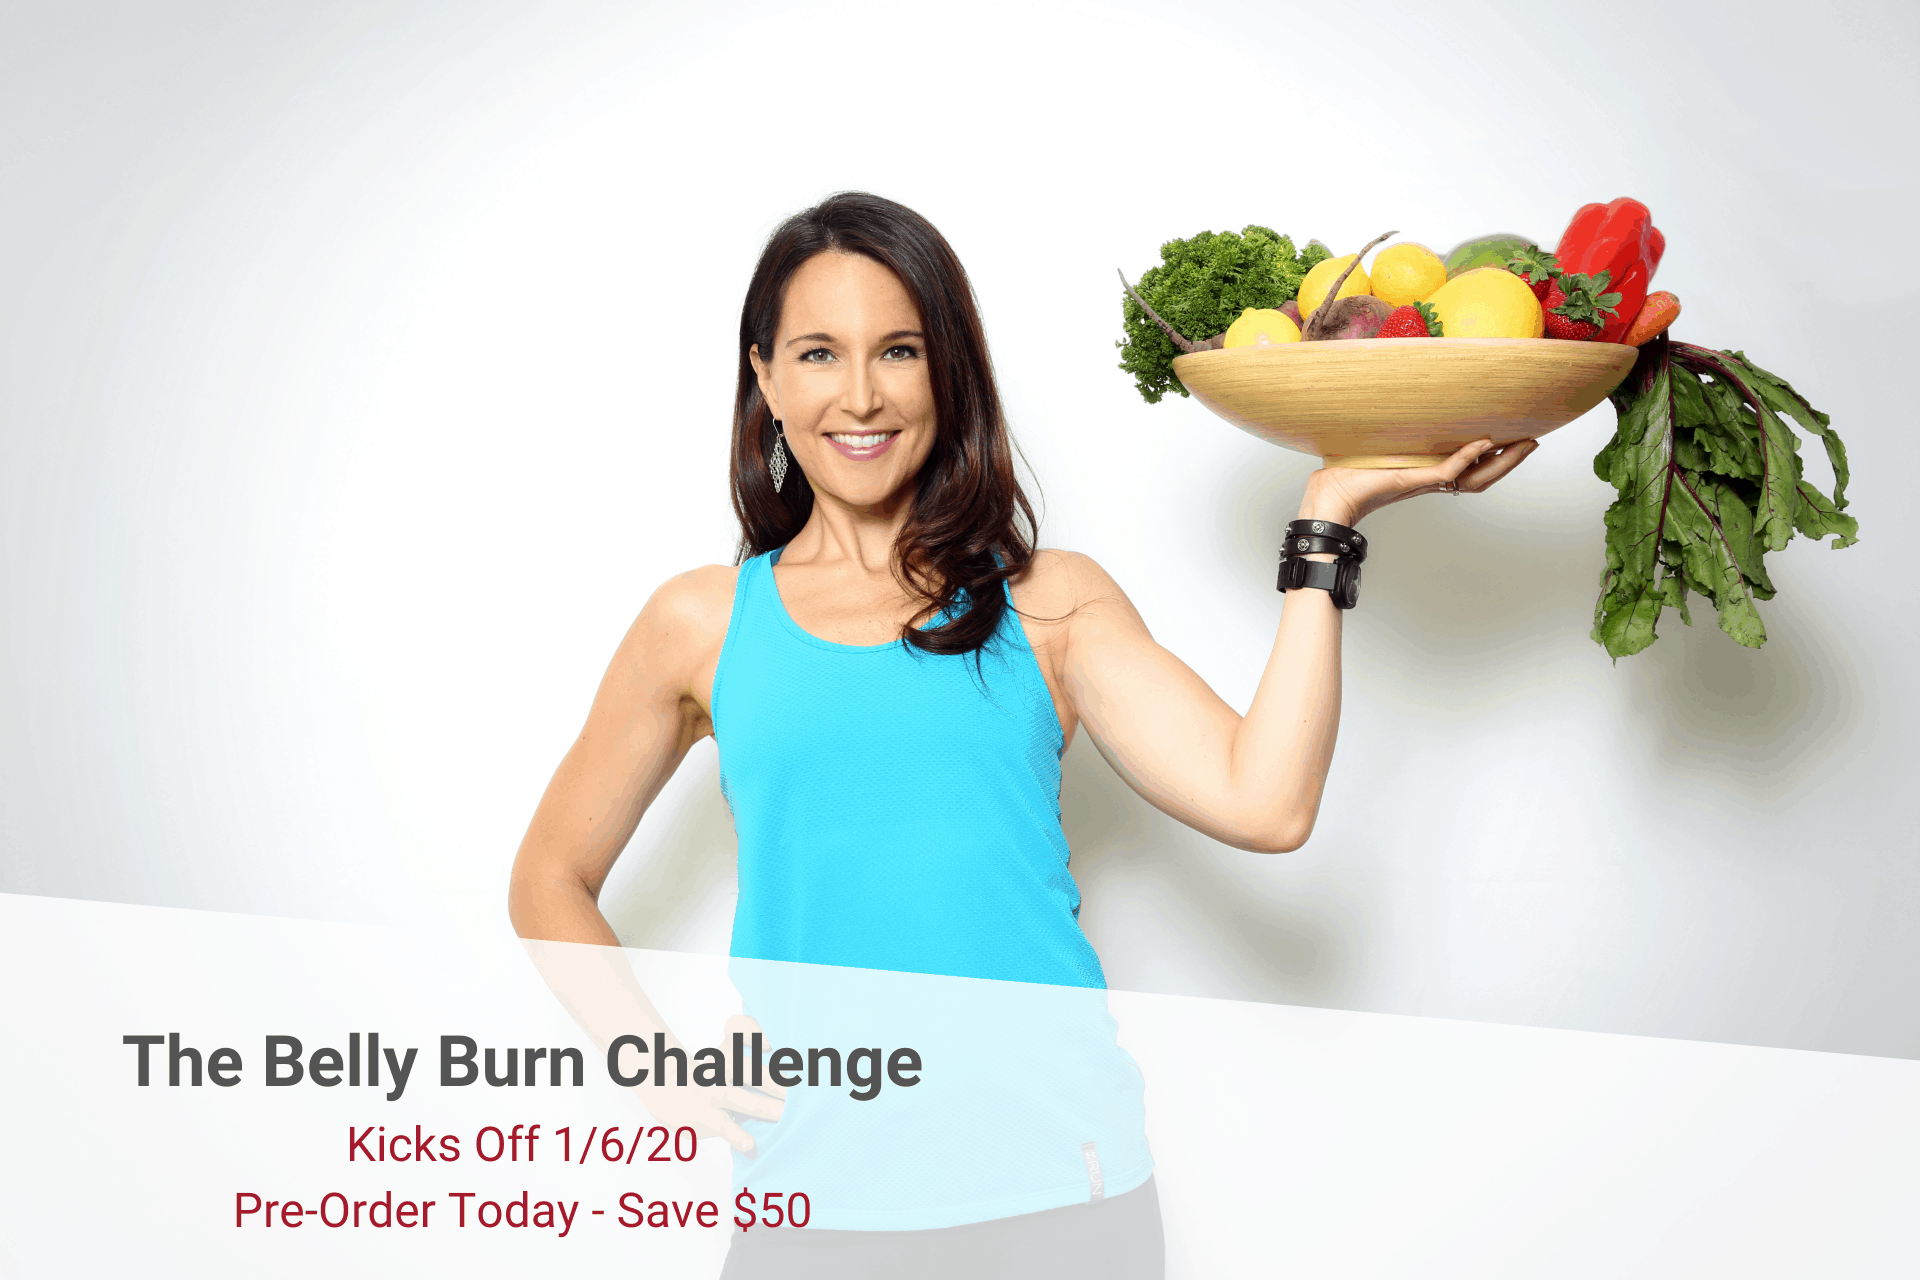 The Belly Burn Challenge Great Gift Idea